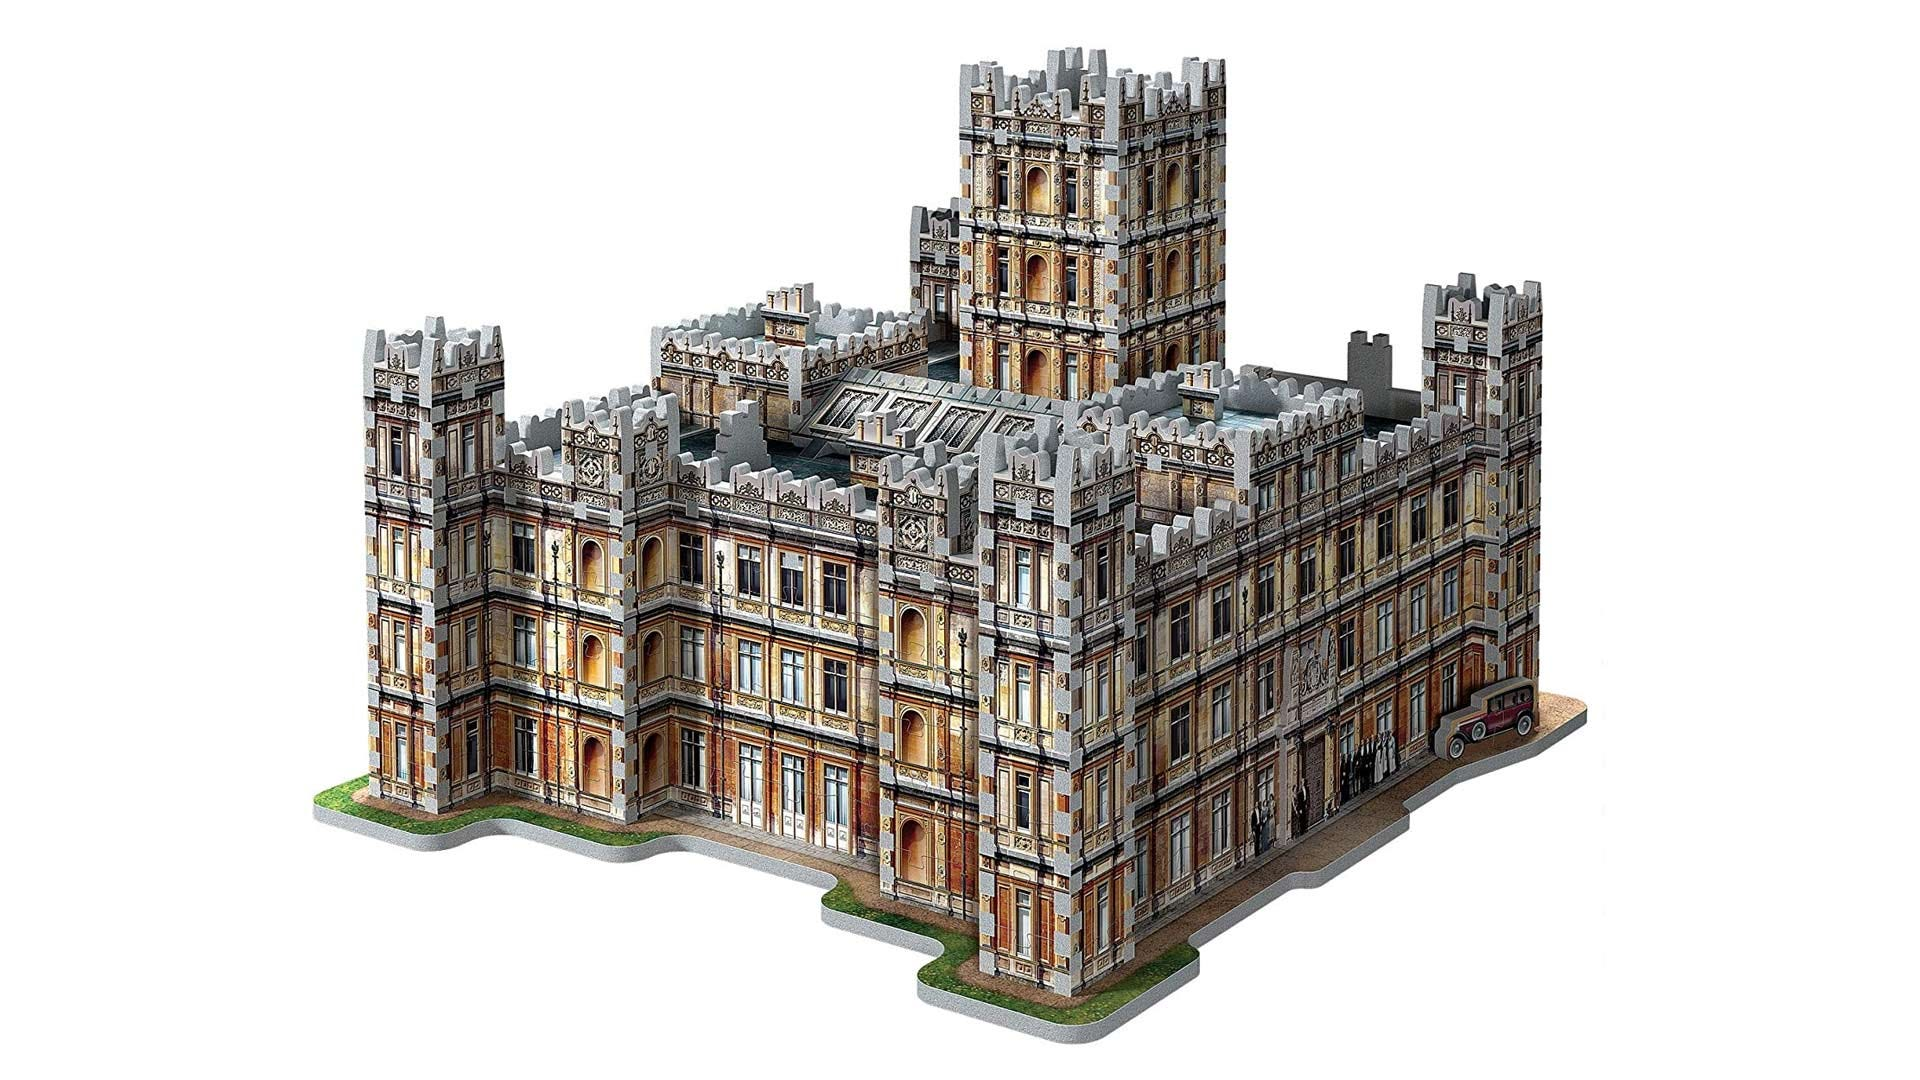 The Downton Abbey castle rendered in 3D puzzle form.